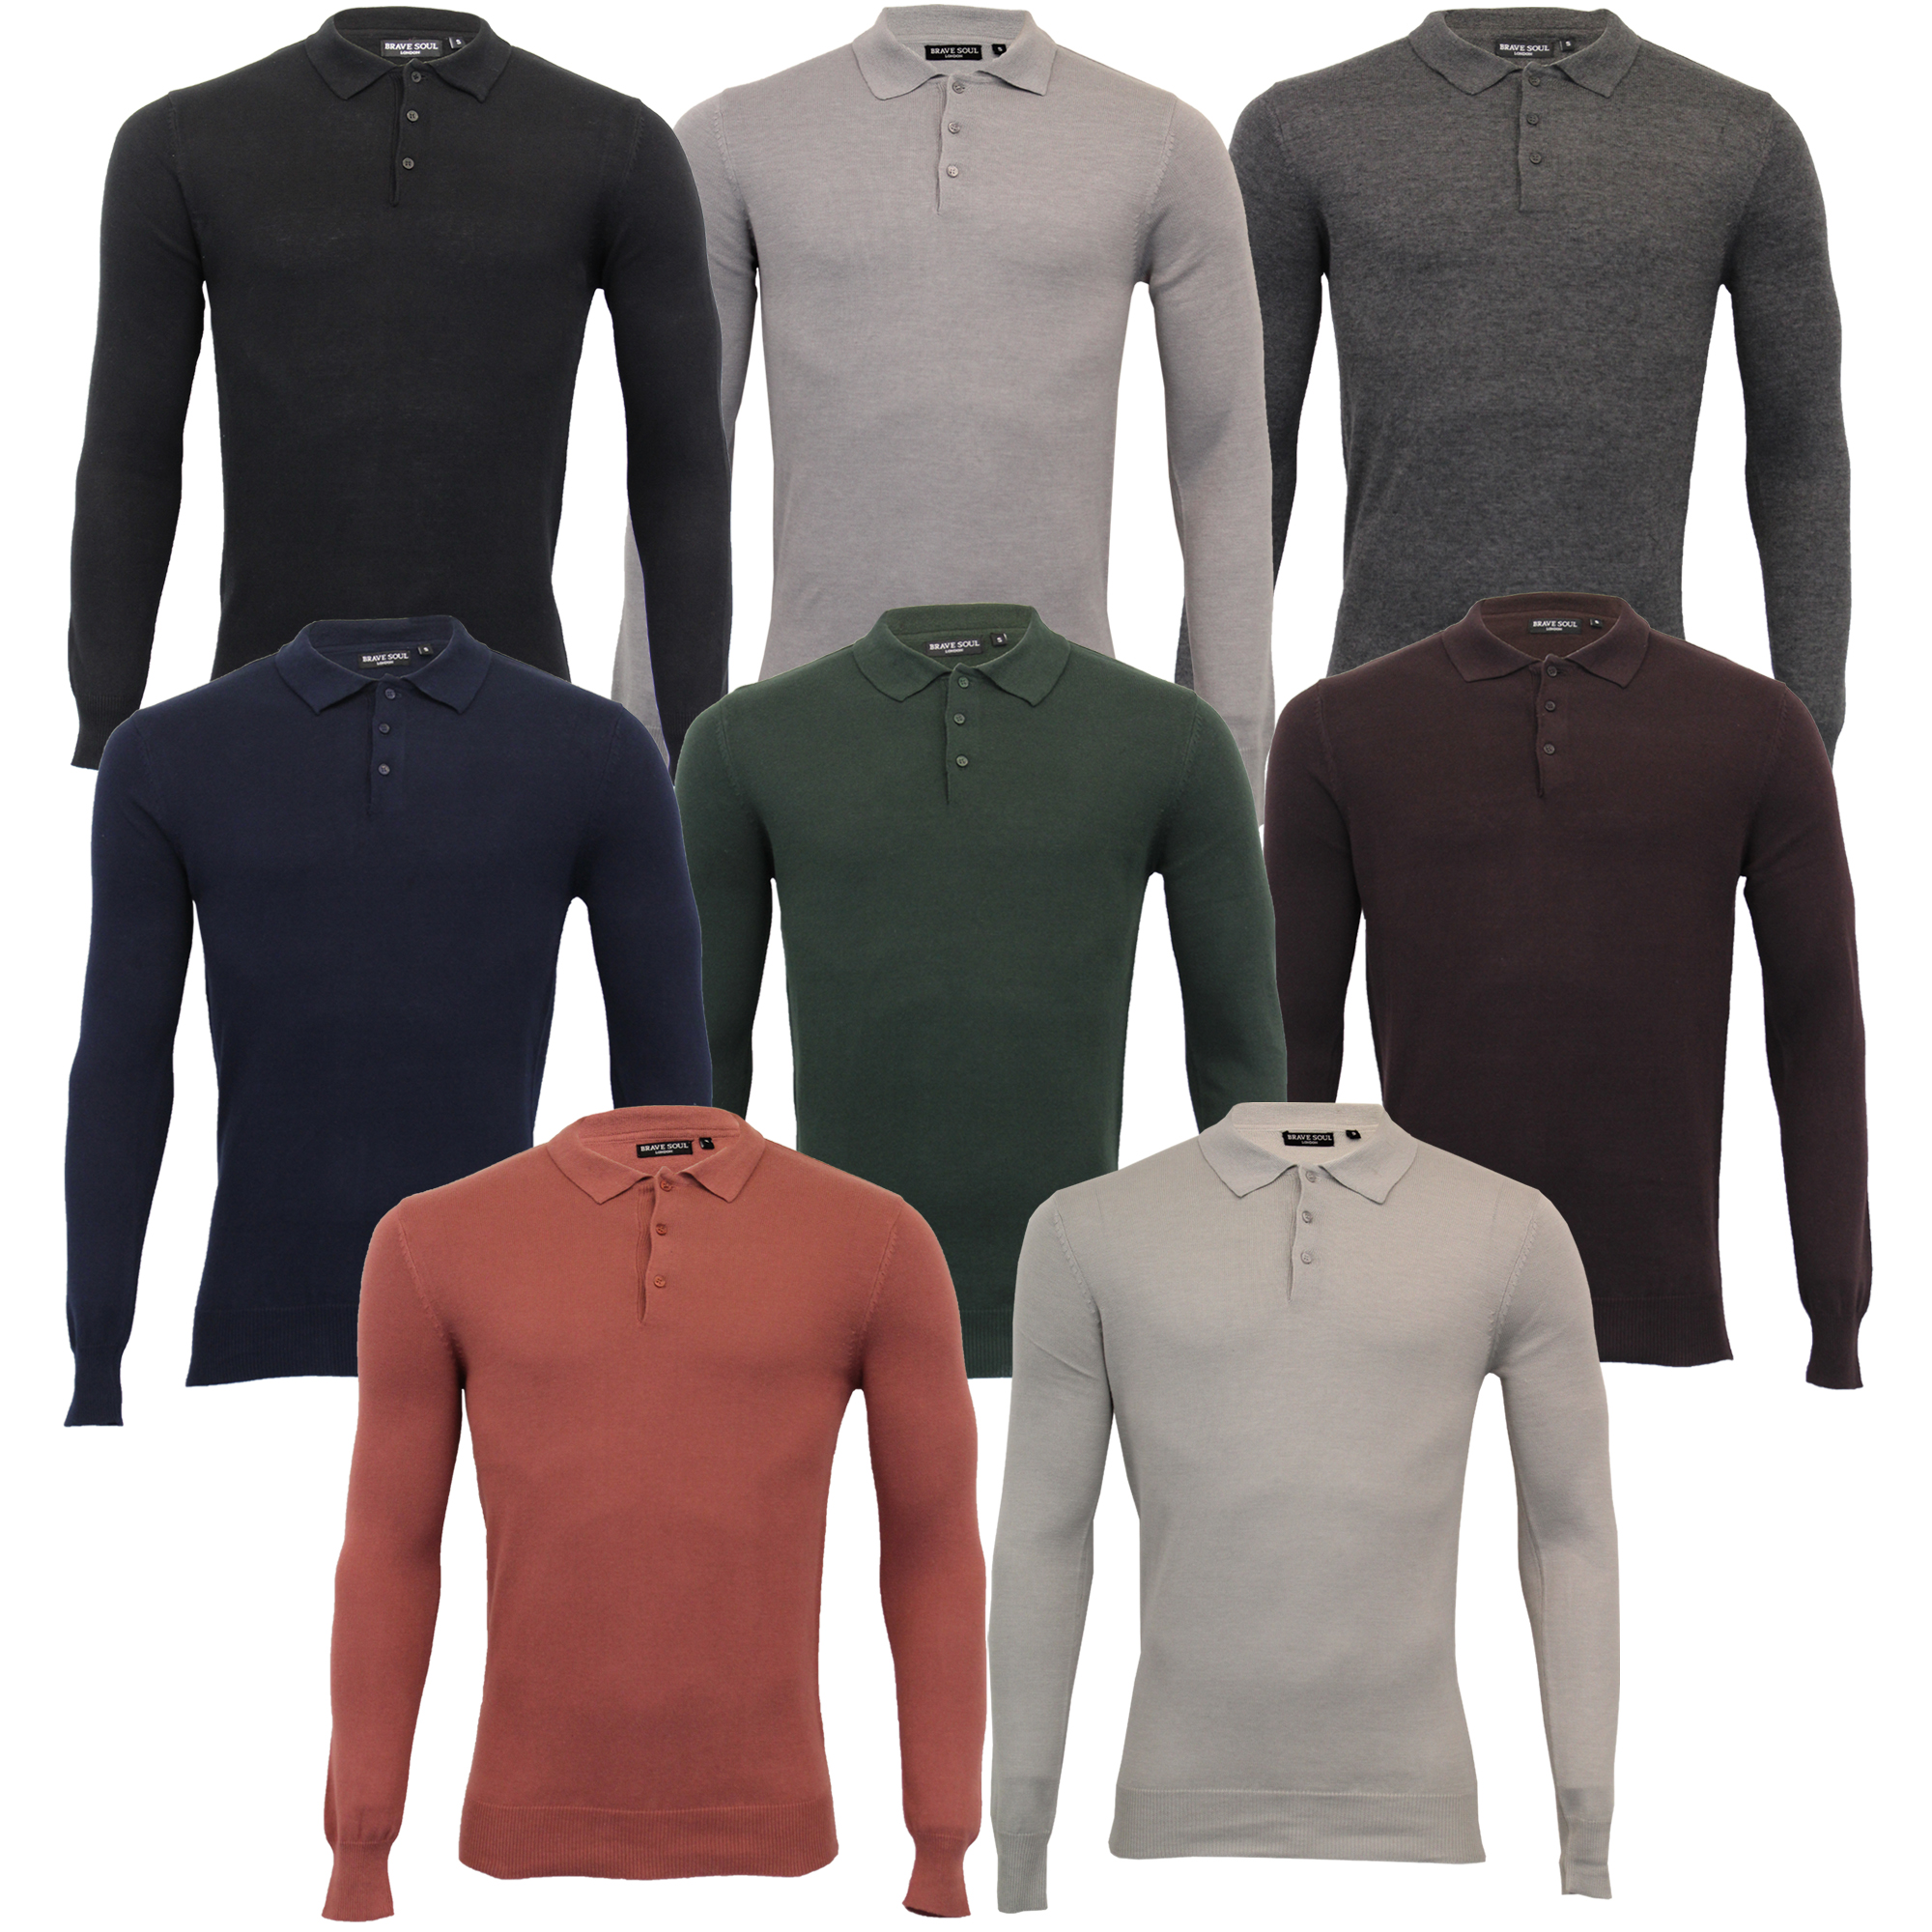 Hommes-Pull-Tricot-Brave-Soul-Polo-Haut-Pull-Patte-Pull-Over-Leger-Neuf